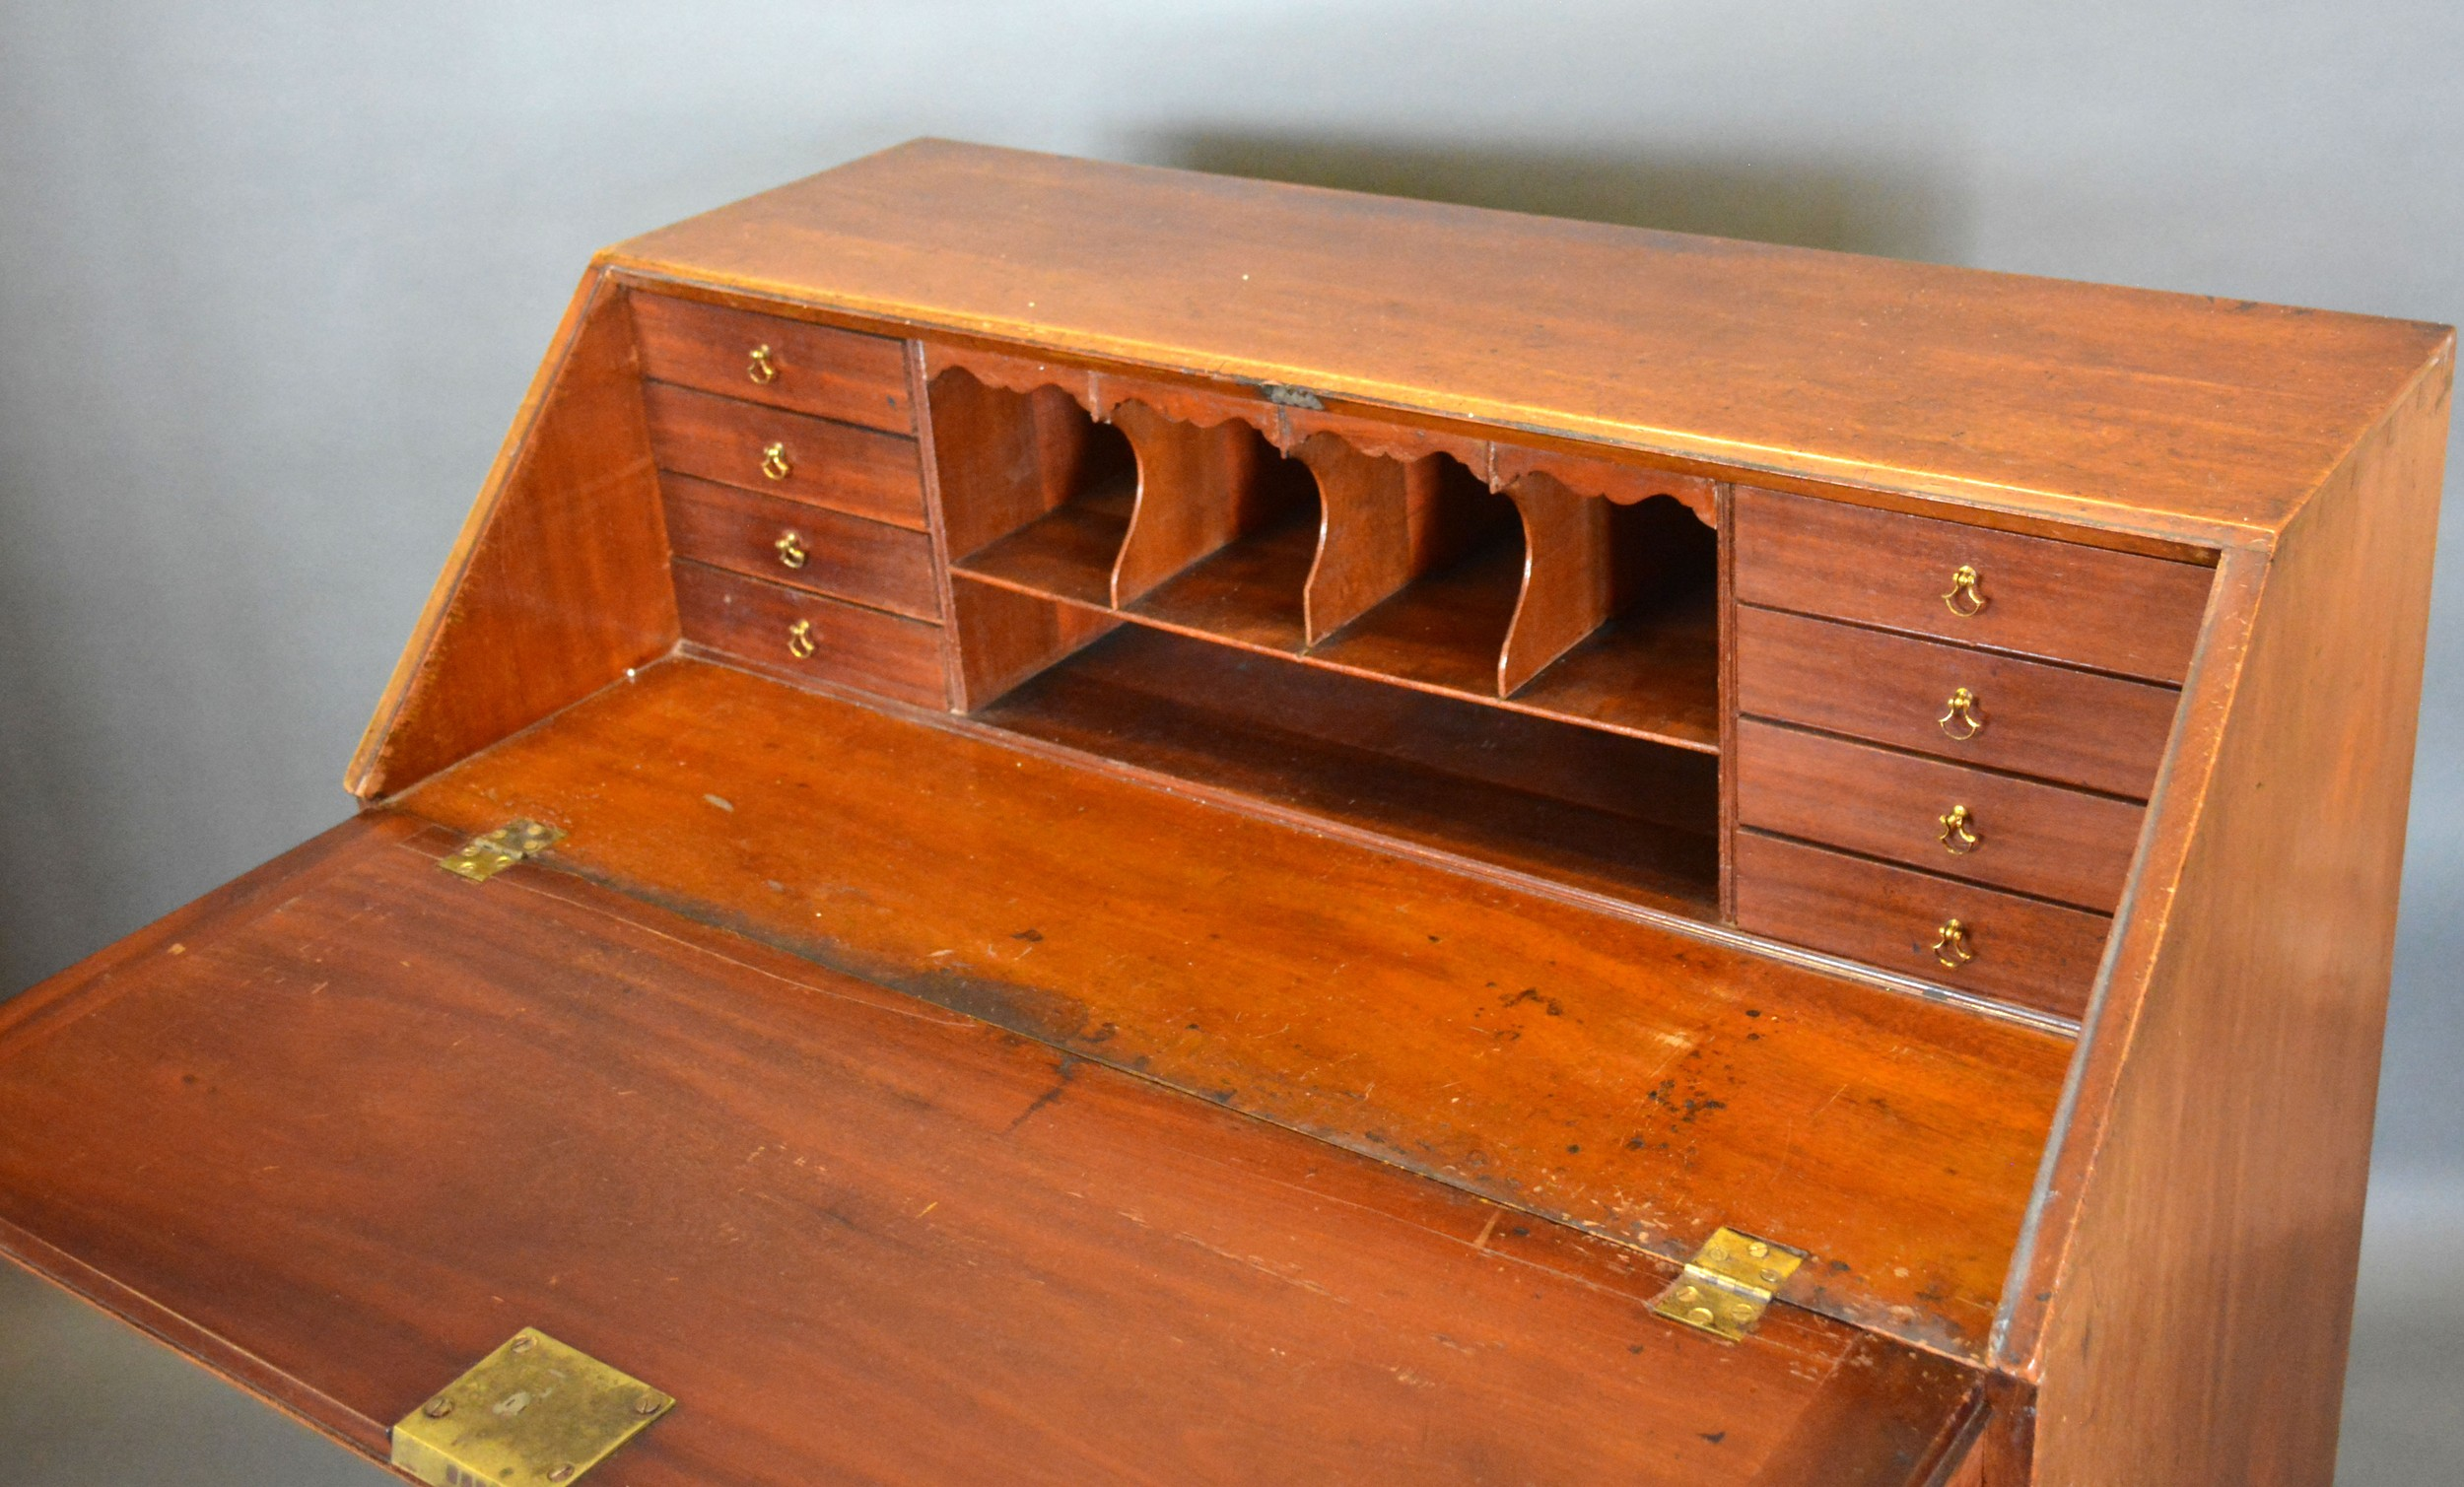 A 19th century mahogany bureau, the fall front enclosing a fitted interior above four long drawers - Image 2 of 2